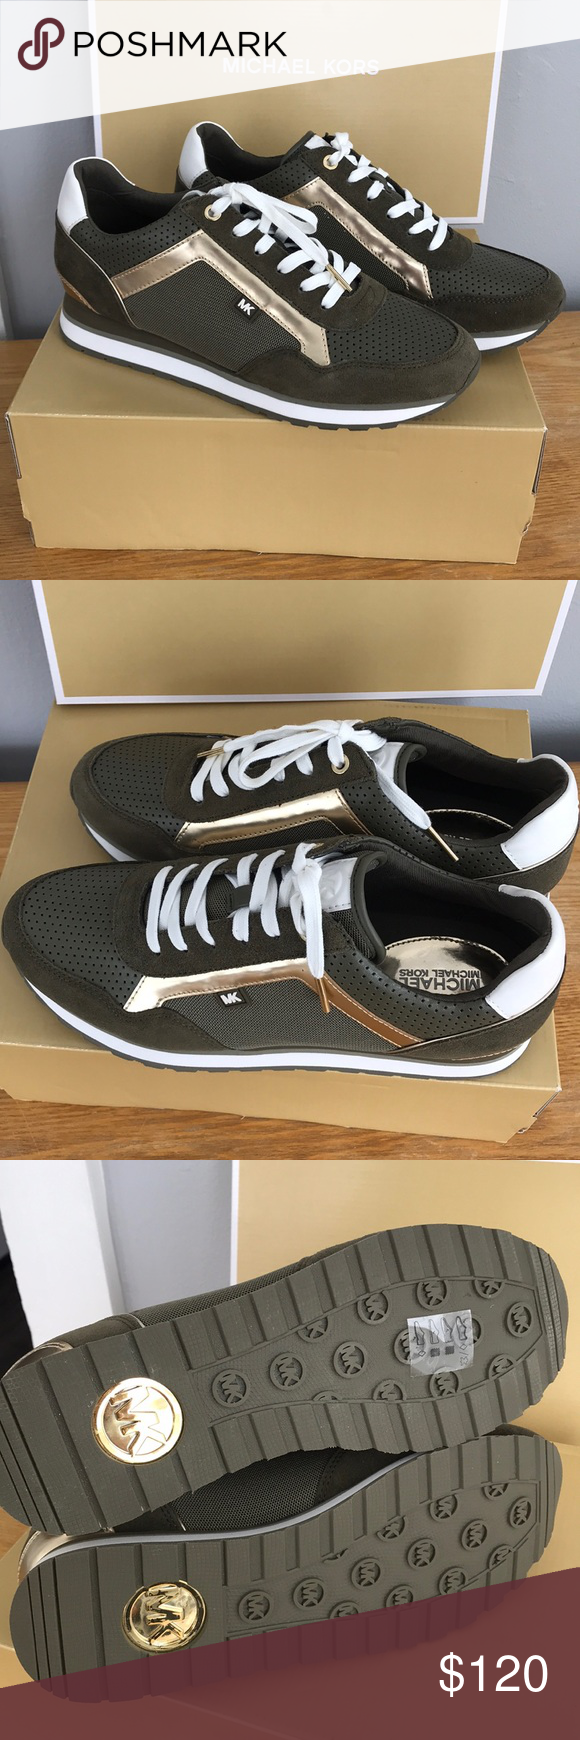 0abc36865ffc Michael Kors Maddy trainer shoes sneakers 9 olive Gorgeous pair of sneakers  👟 by Michael Kors